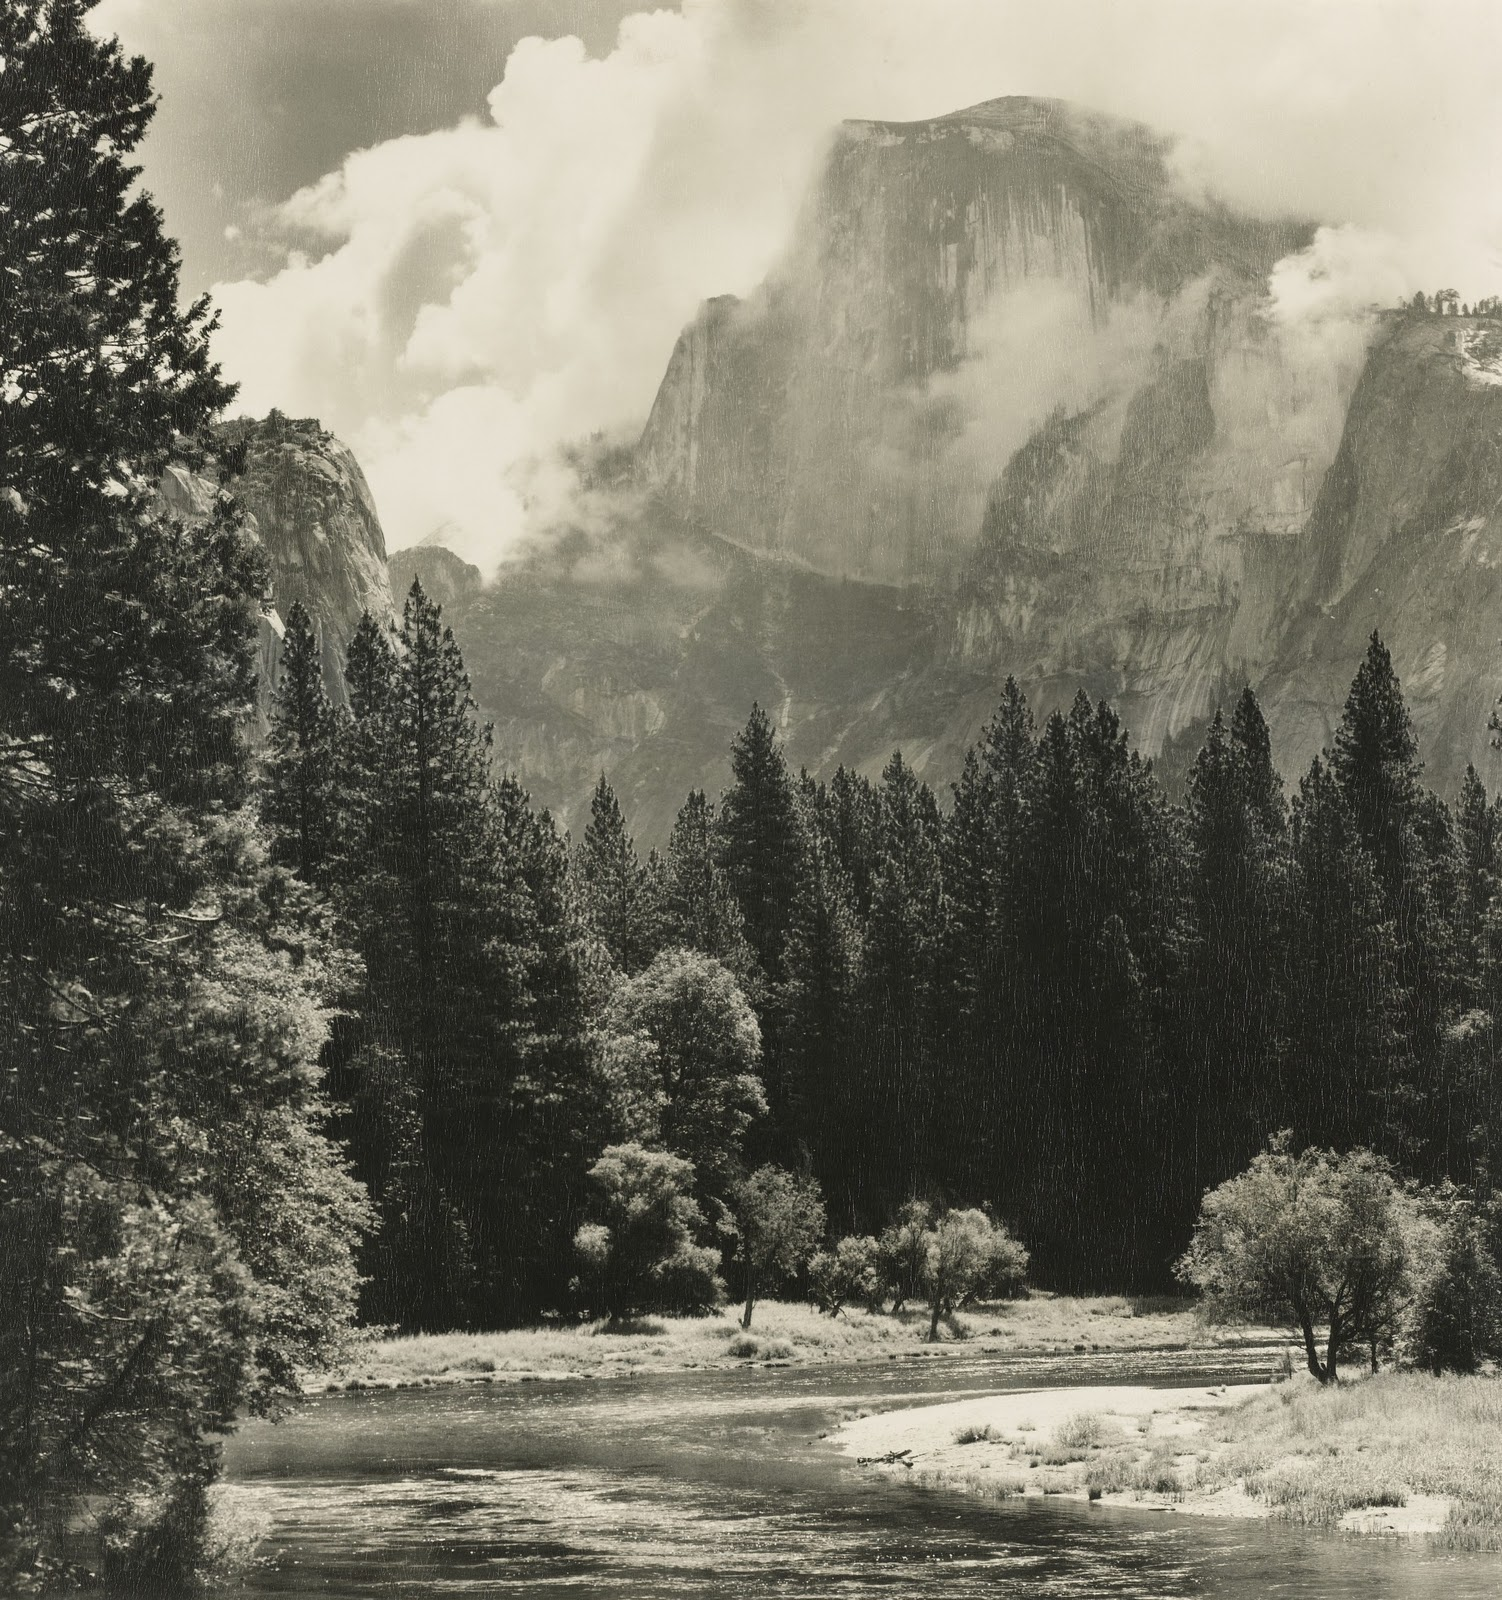 Ansel Adams, Half Dome, Merced River. Mural sized (Photo courtesy Sotheby's-Click to Enlarge)